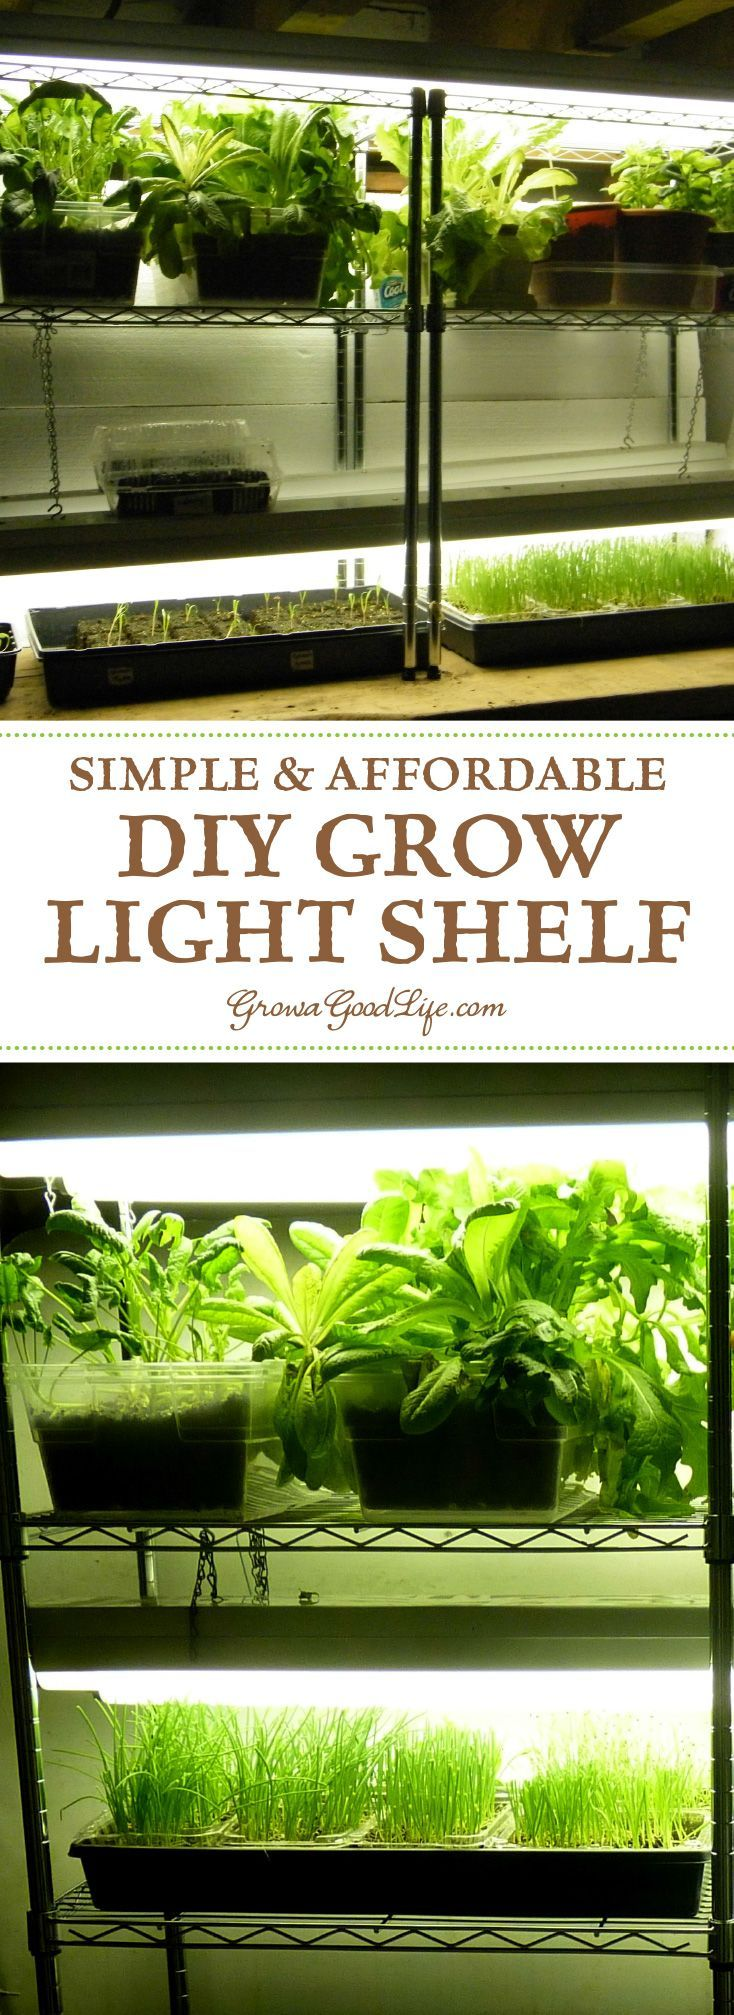 Build A Grow Light System For Starting Seeds Indoors Growing Plants Indoors Herbs Indoors And